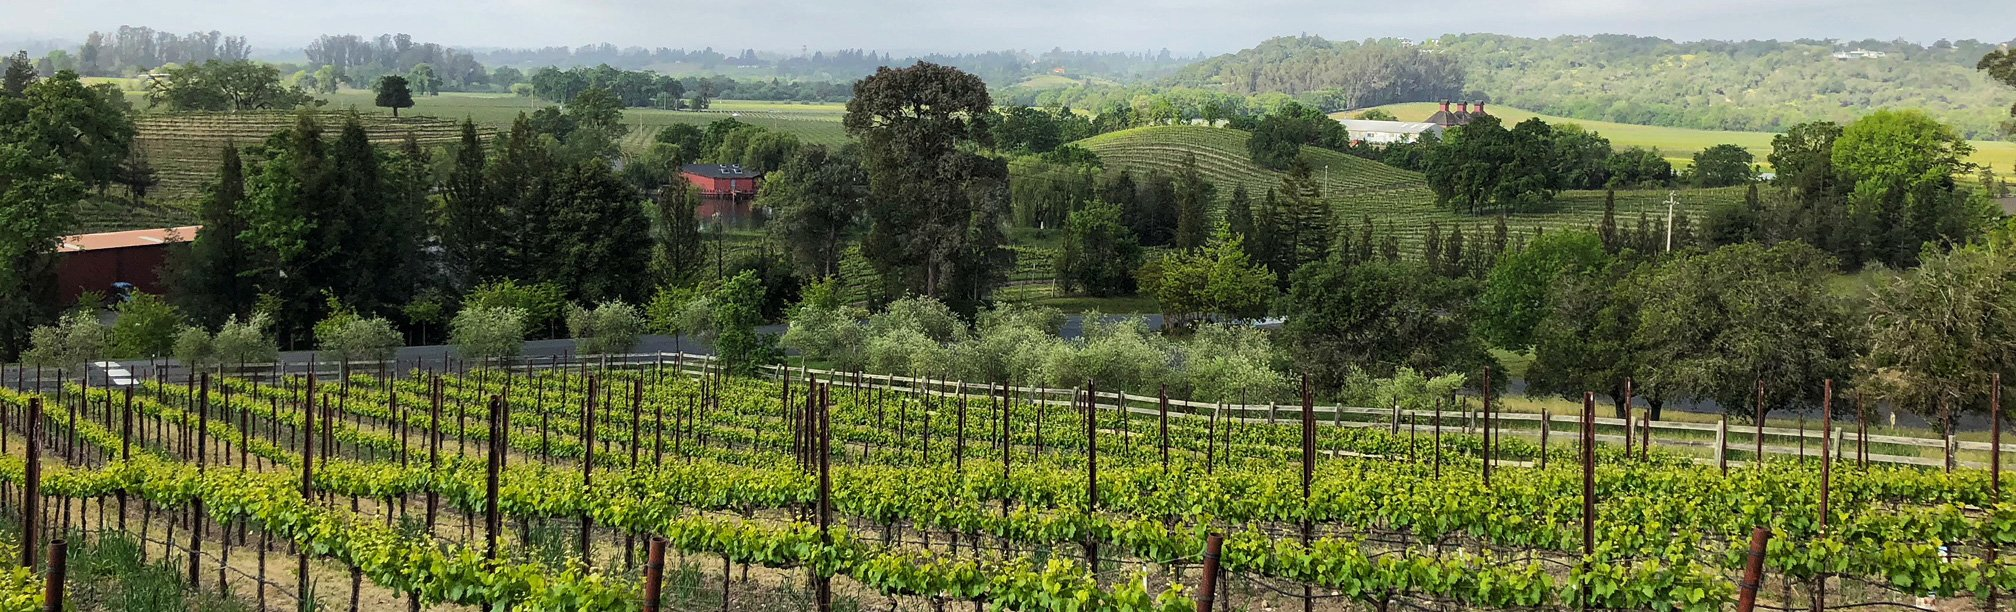 Sonoma Region Wine Vineyard